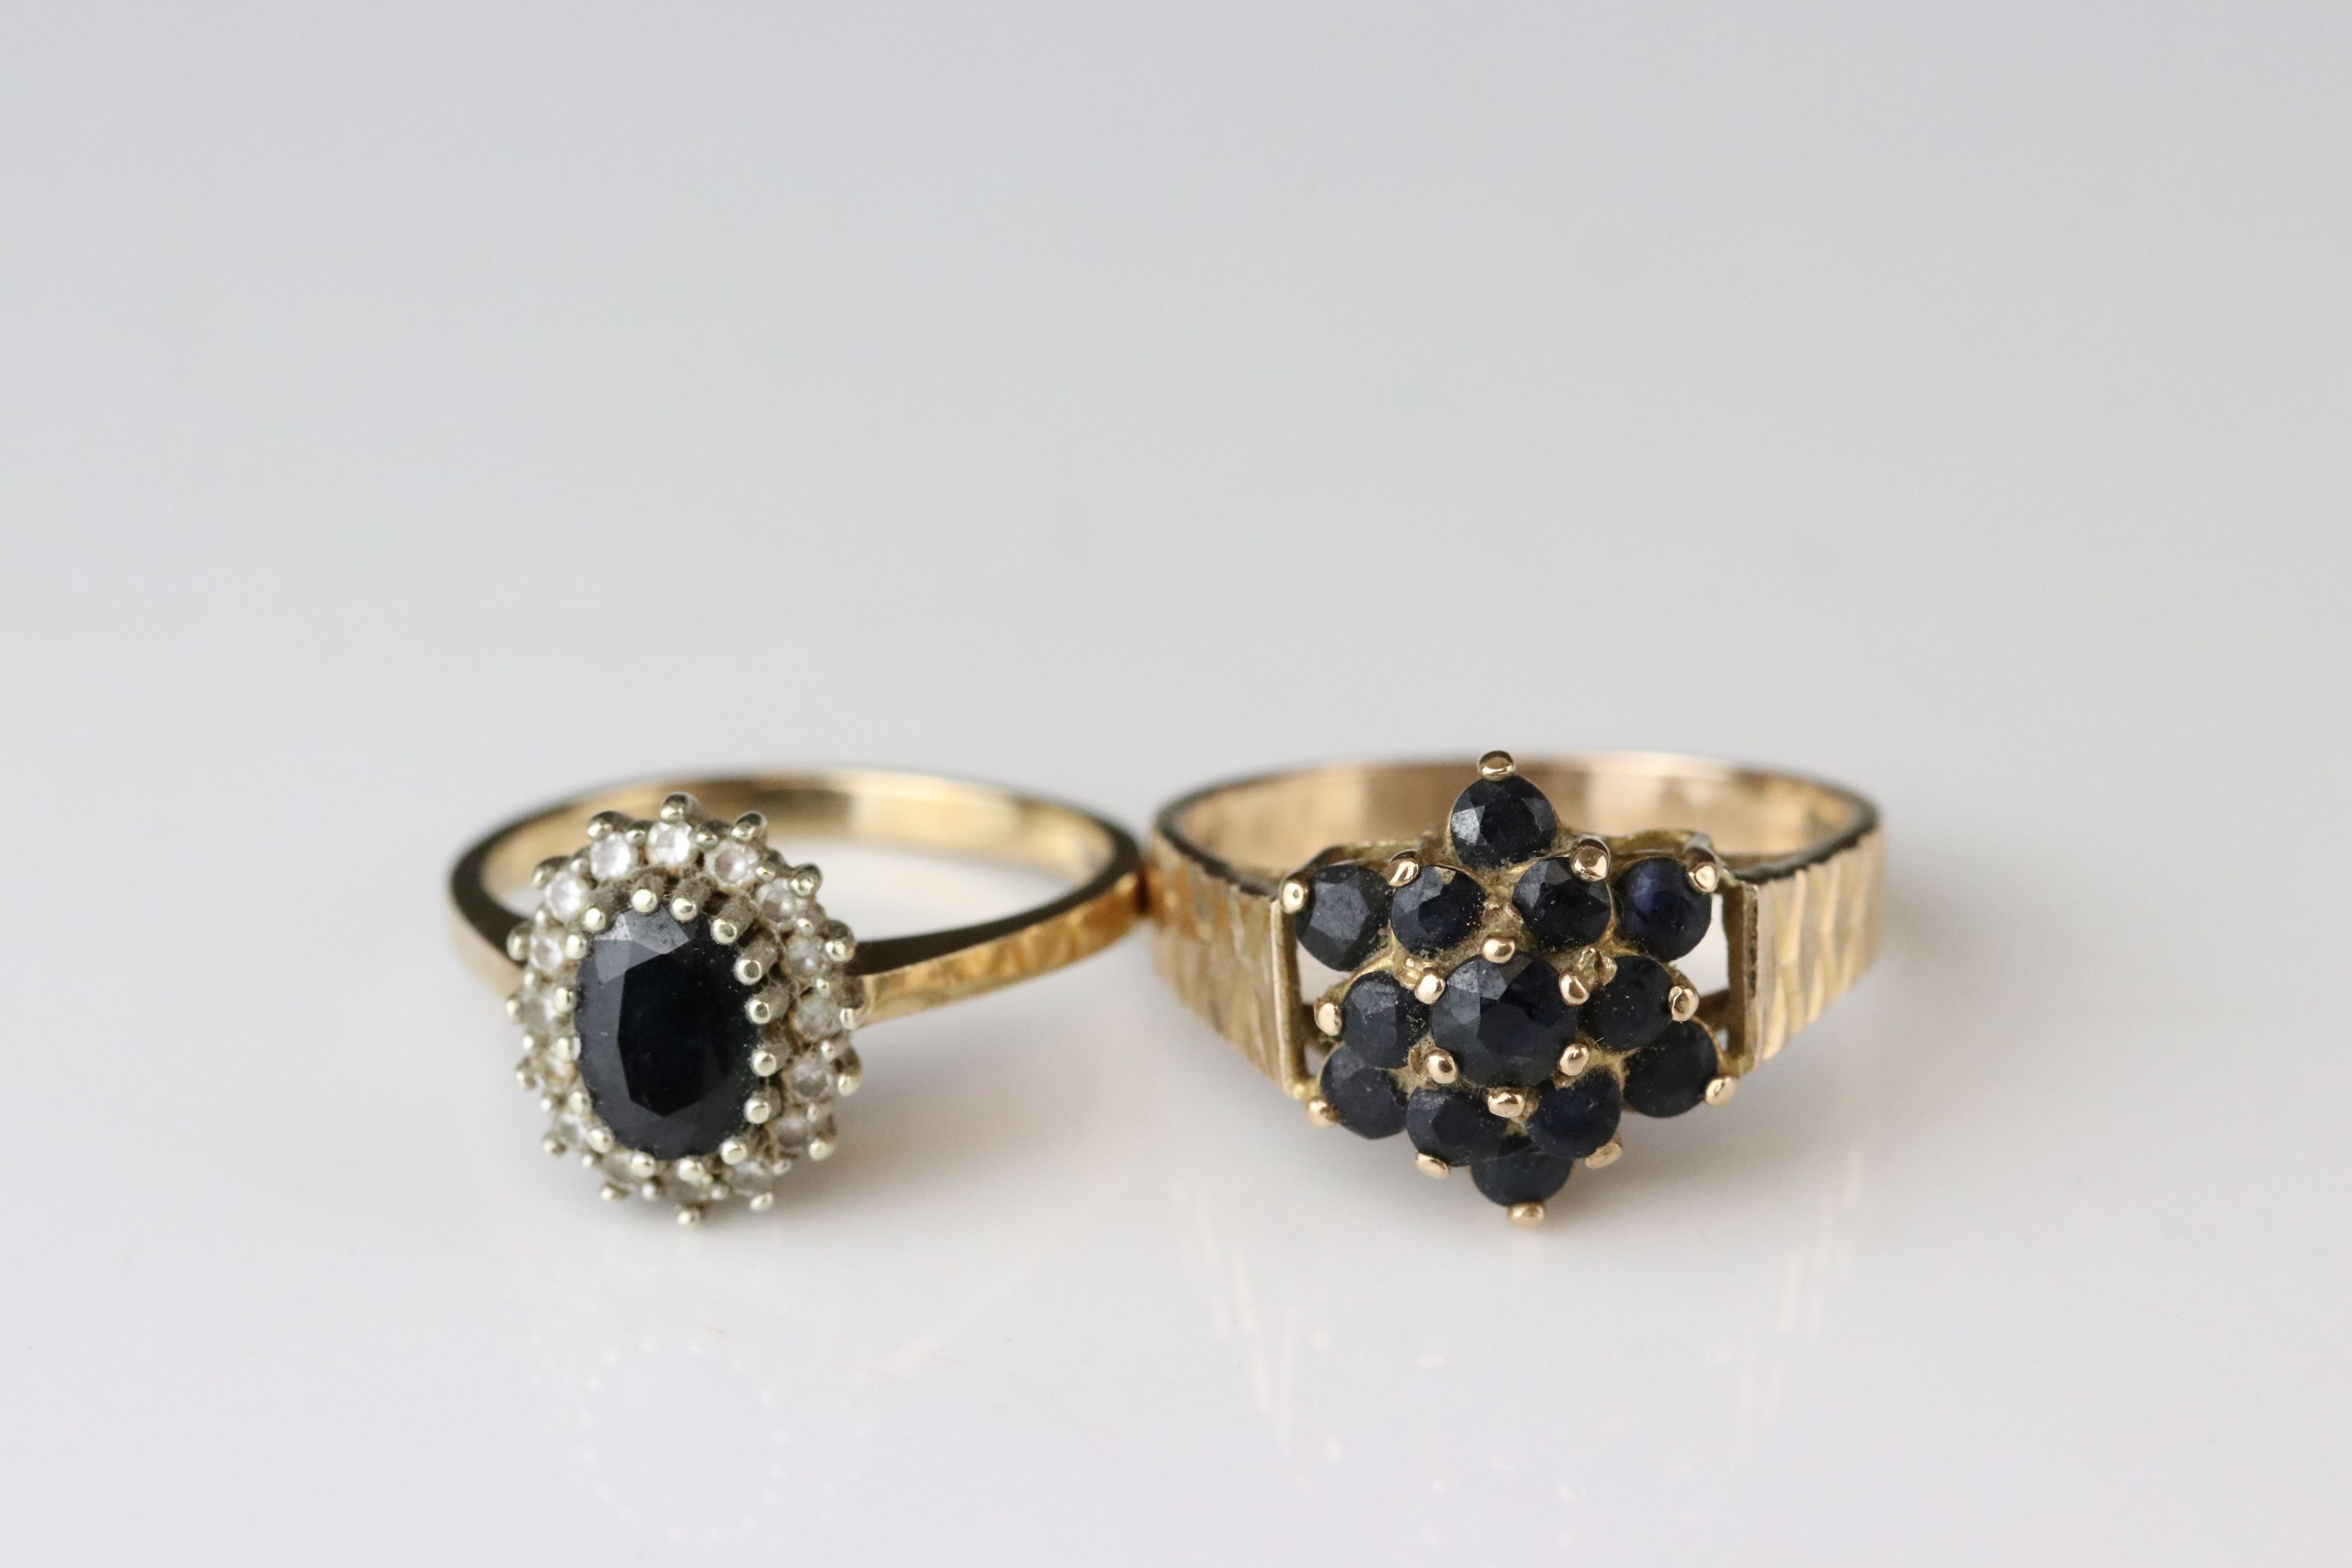 Sapphire 9ct yellow gold cluster ring, together with black sapphire and white stone 9ct yellow - Image 2 of 5